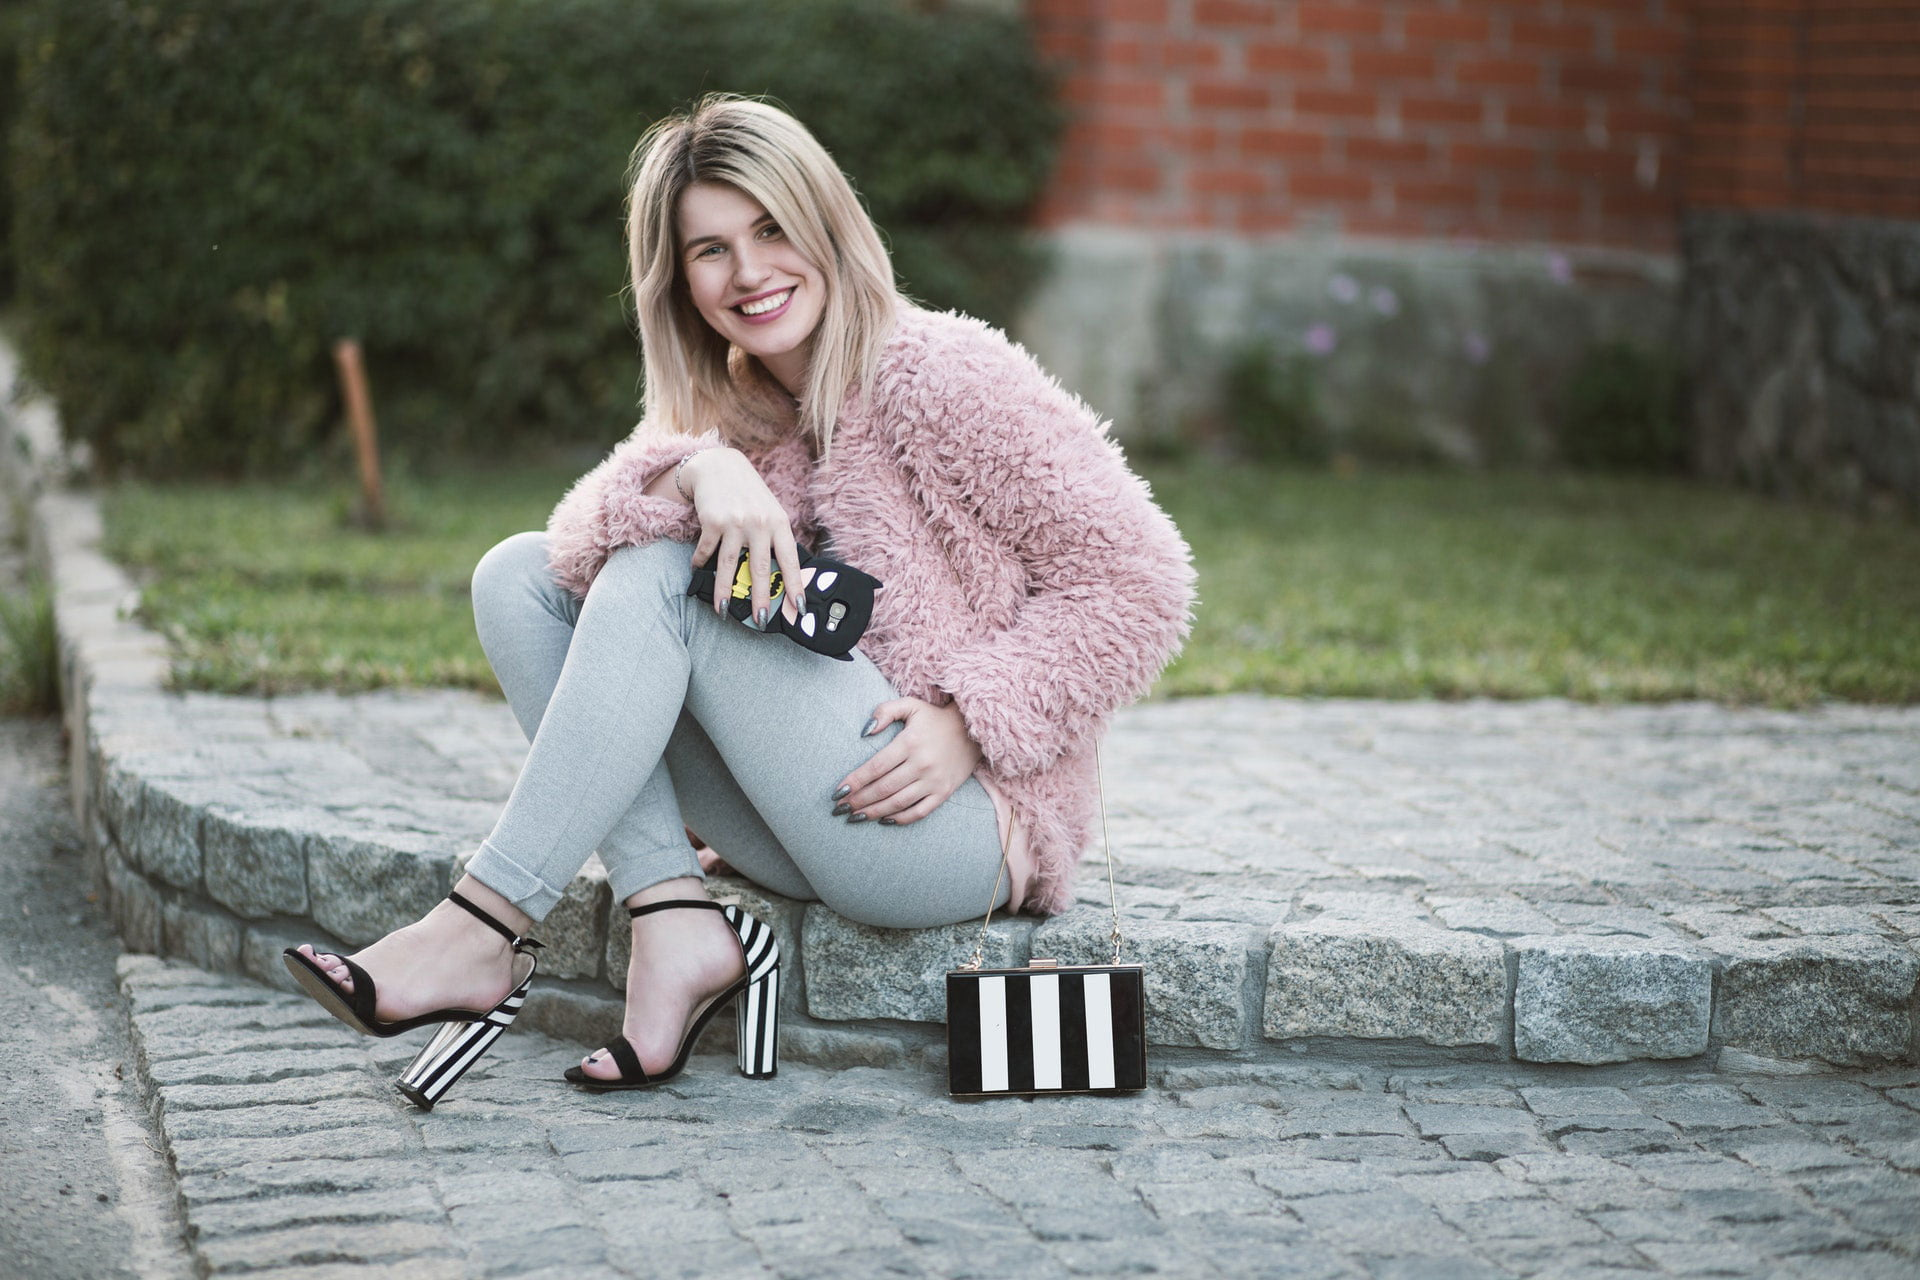 Stylish young woman sitting on pavement in city